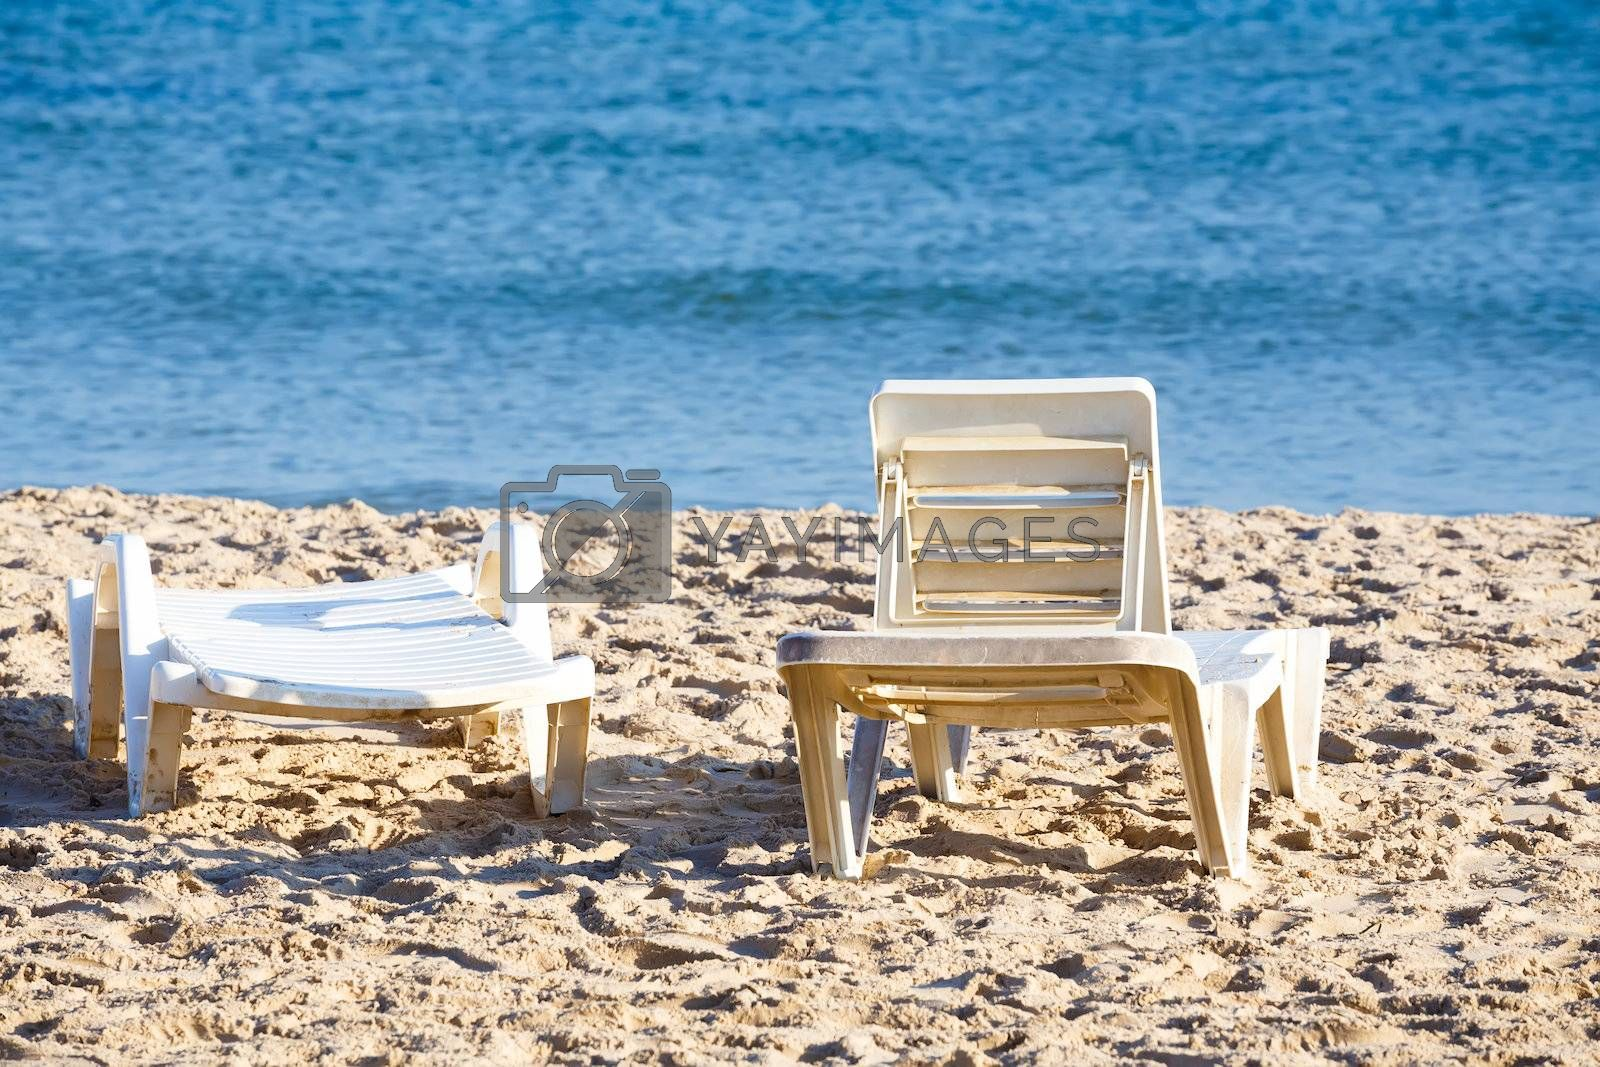 Royalty free image of two old sunloungers on tunisian beach by artush